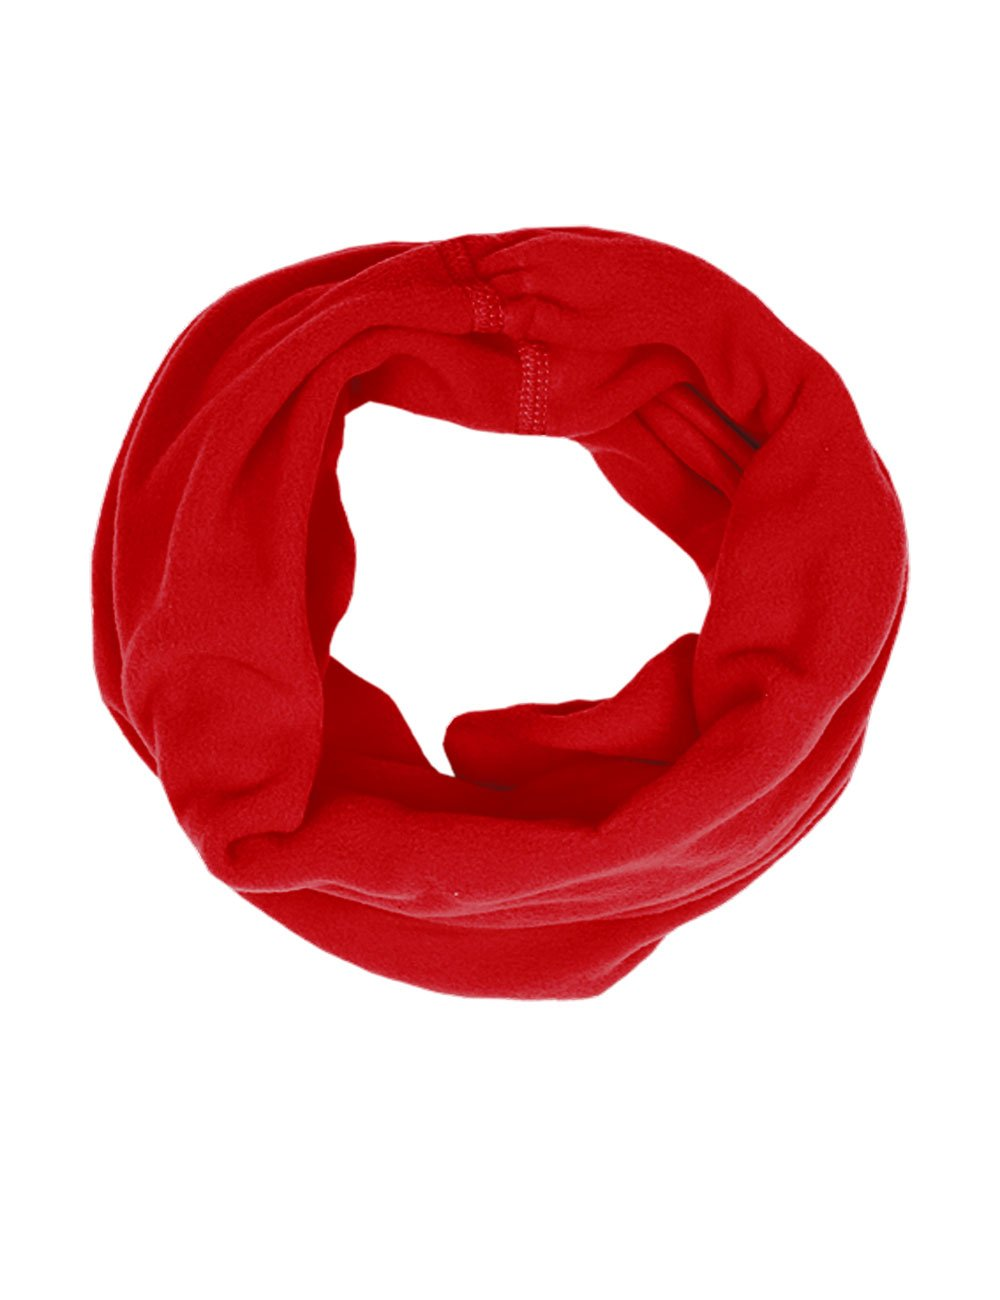 maximo Girl's Multifunktionstuch Neckerchief Red (Rot 2) 63600-752596_2